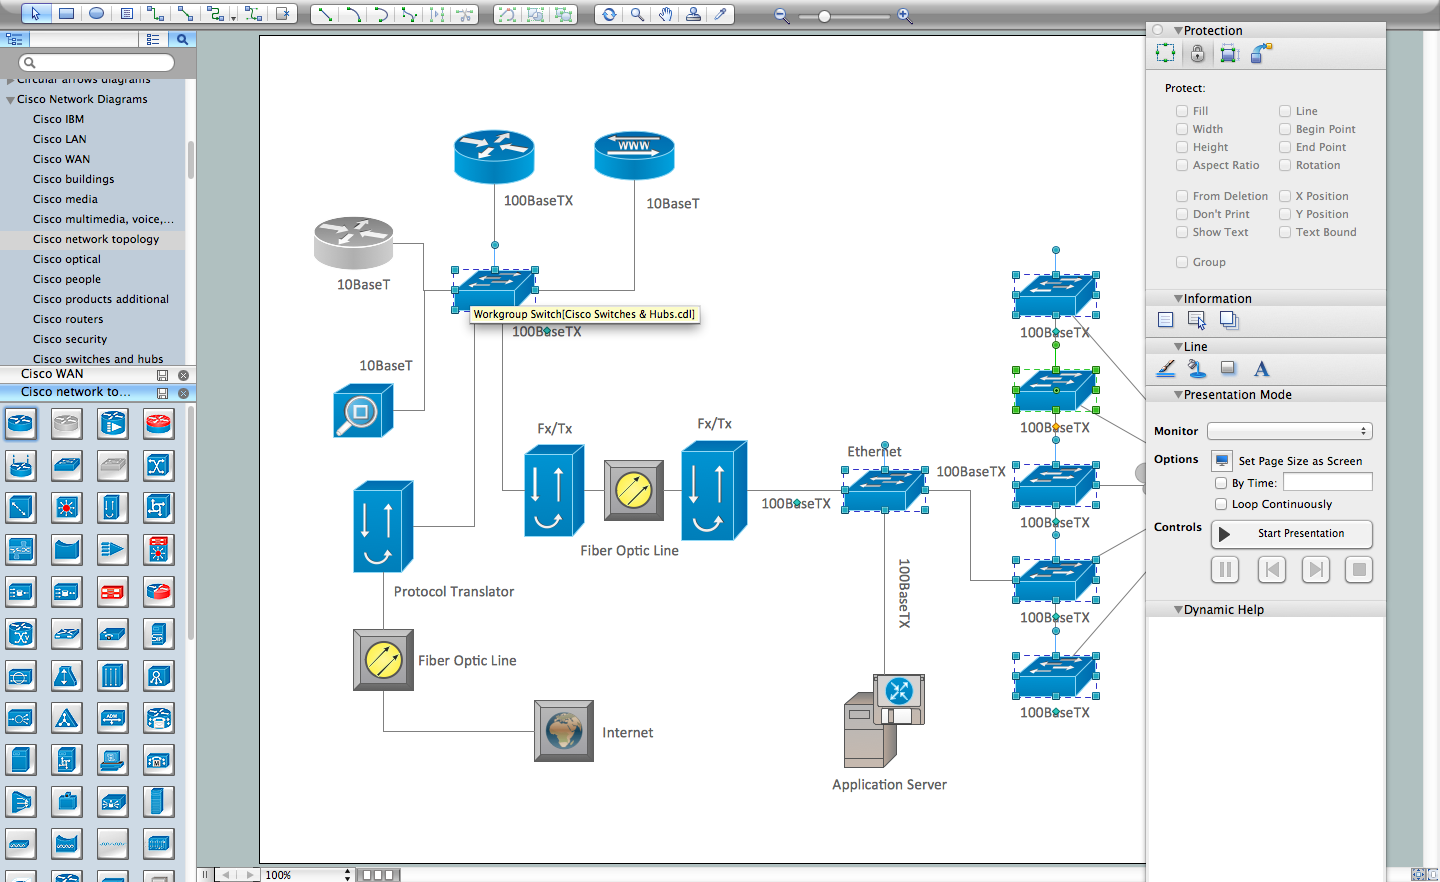 cisco network diagram software - It Diagram Software